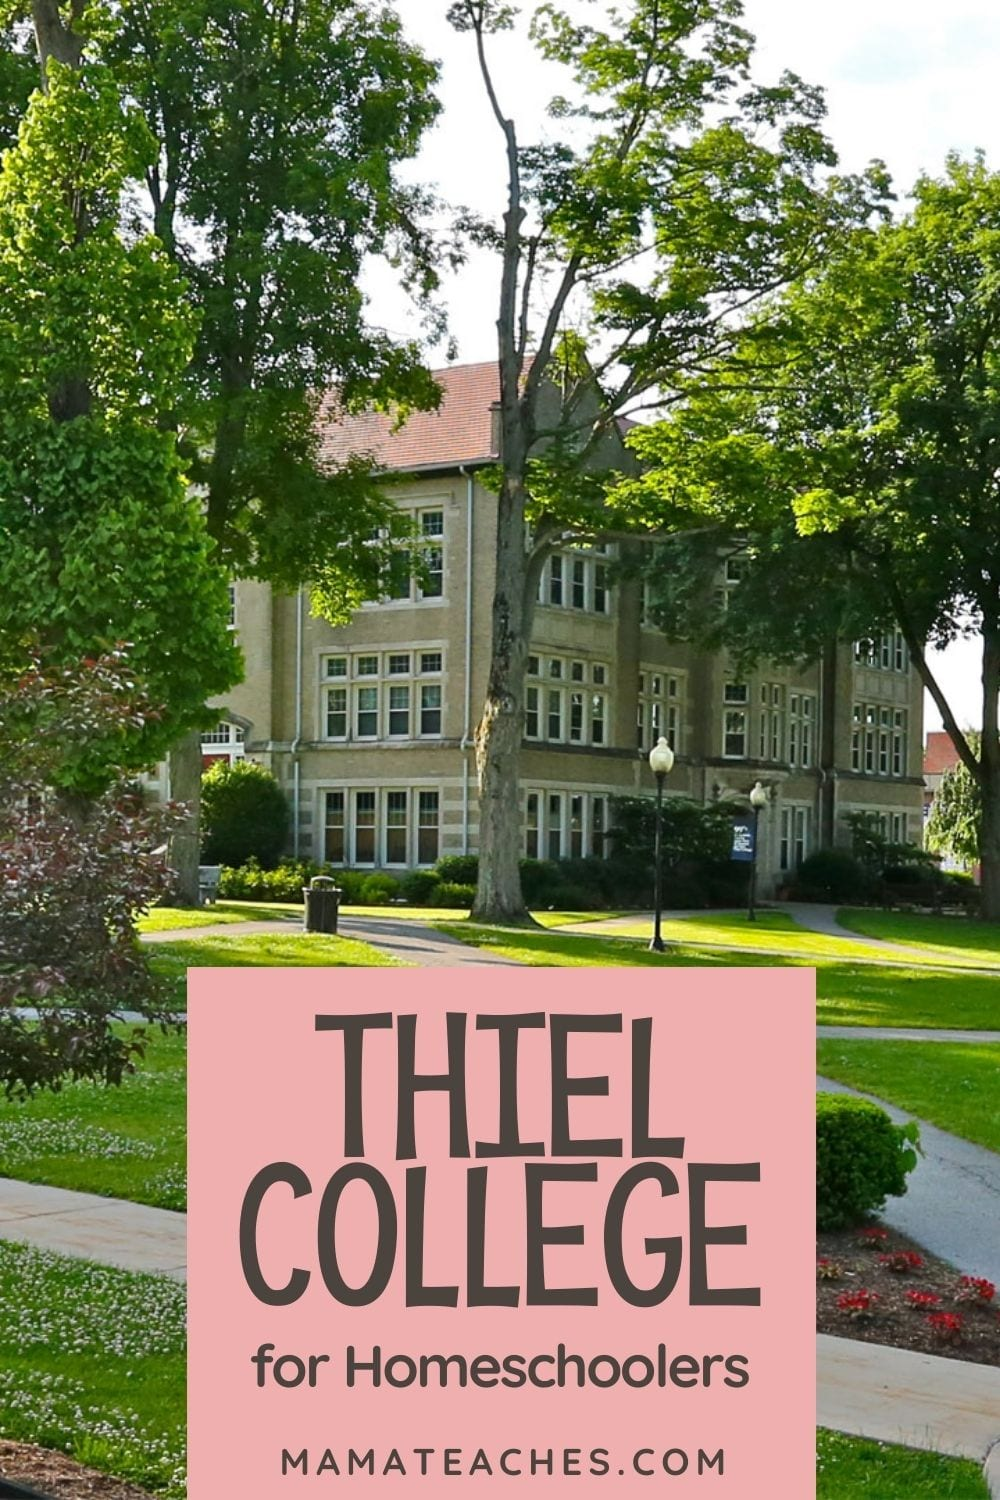 Thiel College for Homeschoolers